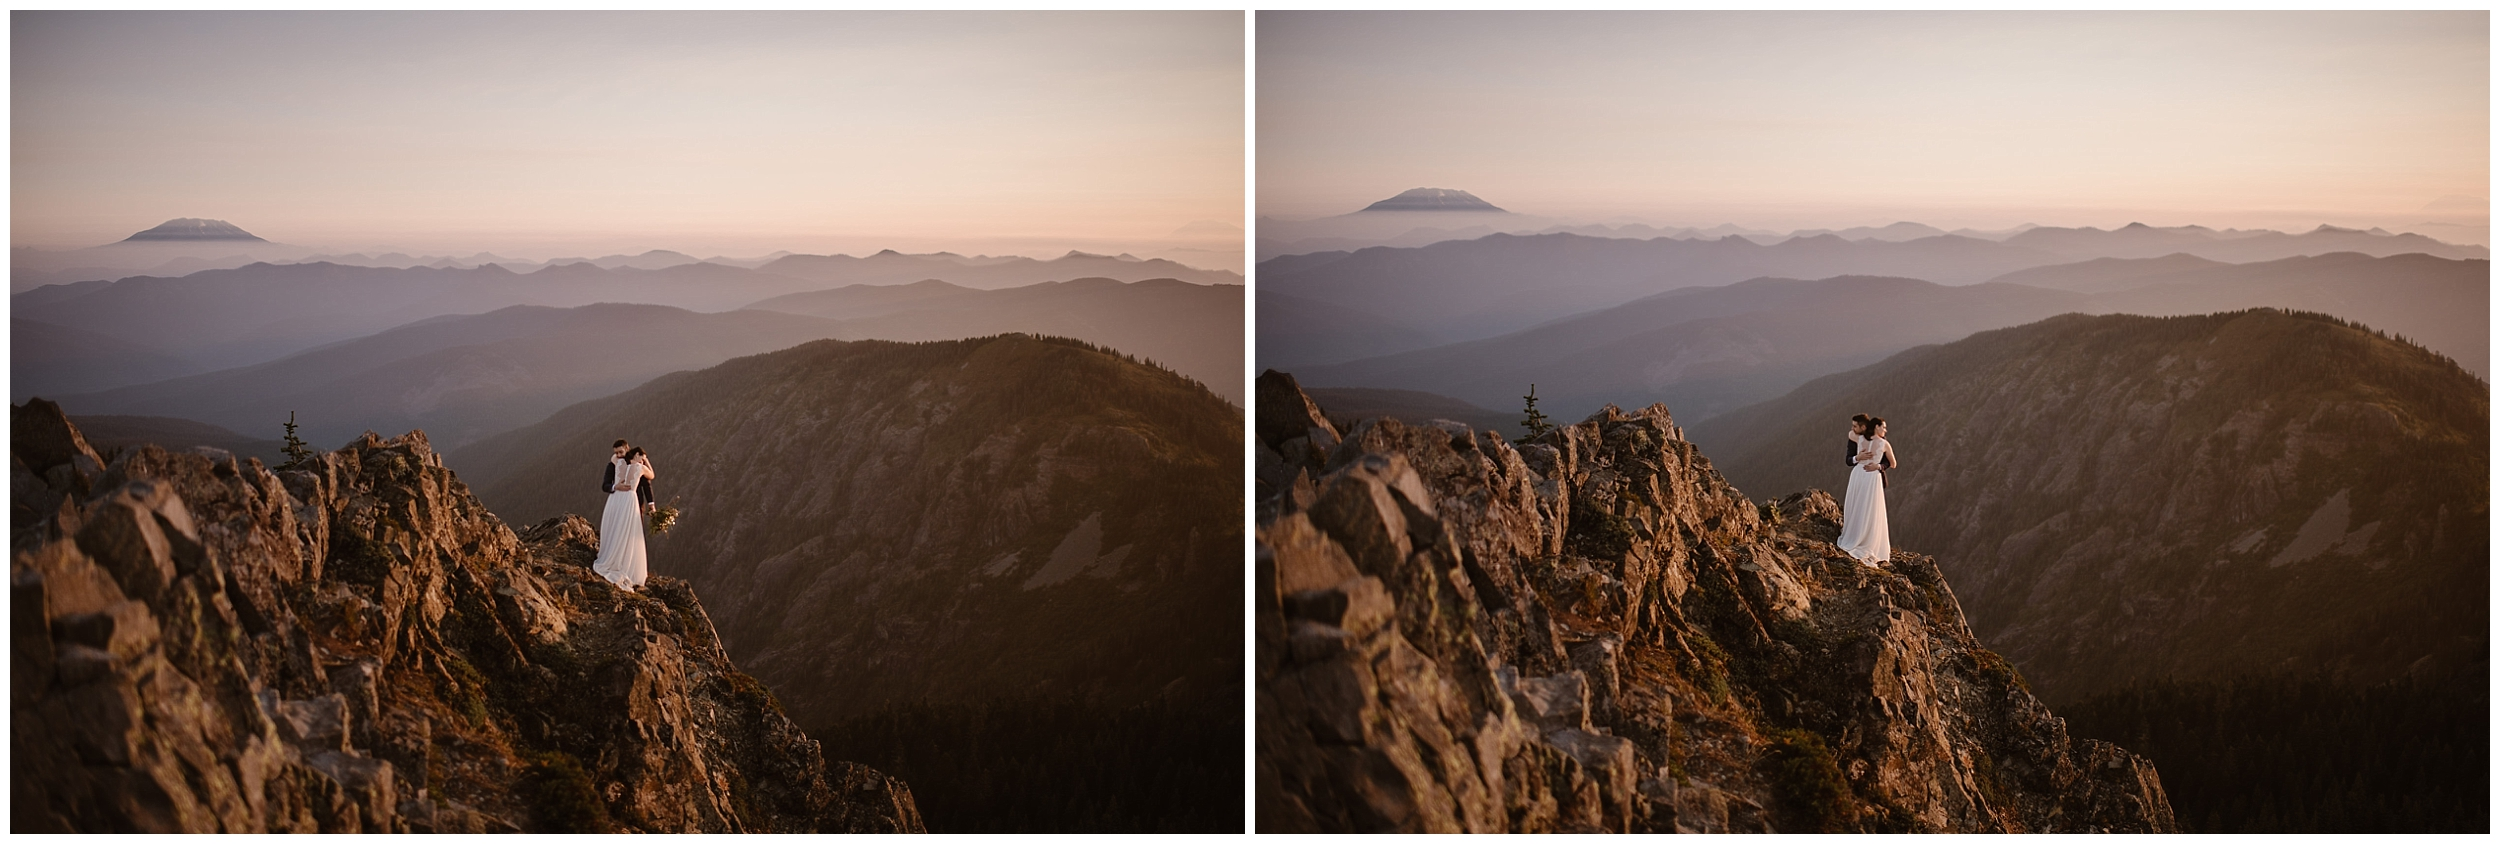 These side-by-side elopement photos captured by Washington state elopement photographer Adventure Instead shows Lauryn and David hugging close as the sun rises at the top of their mountain hike.